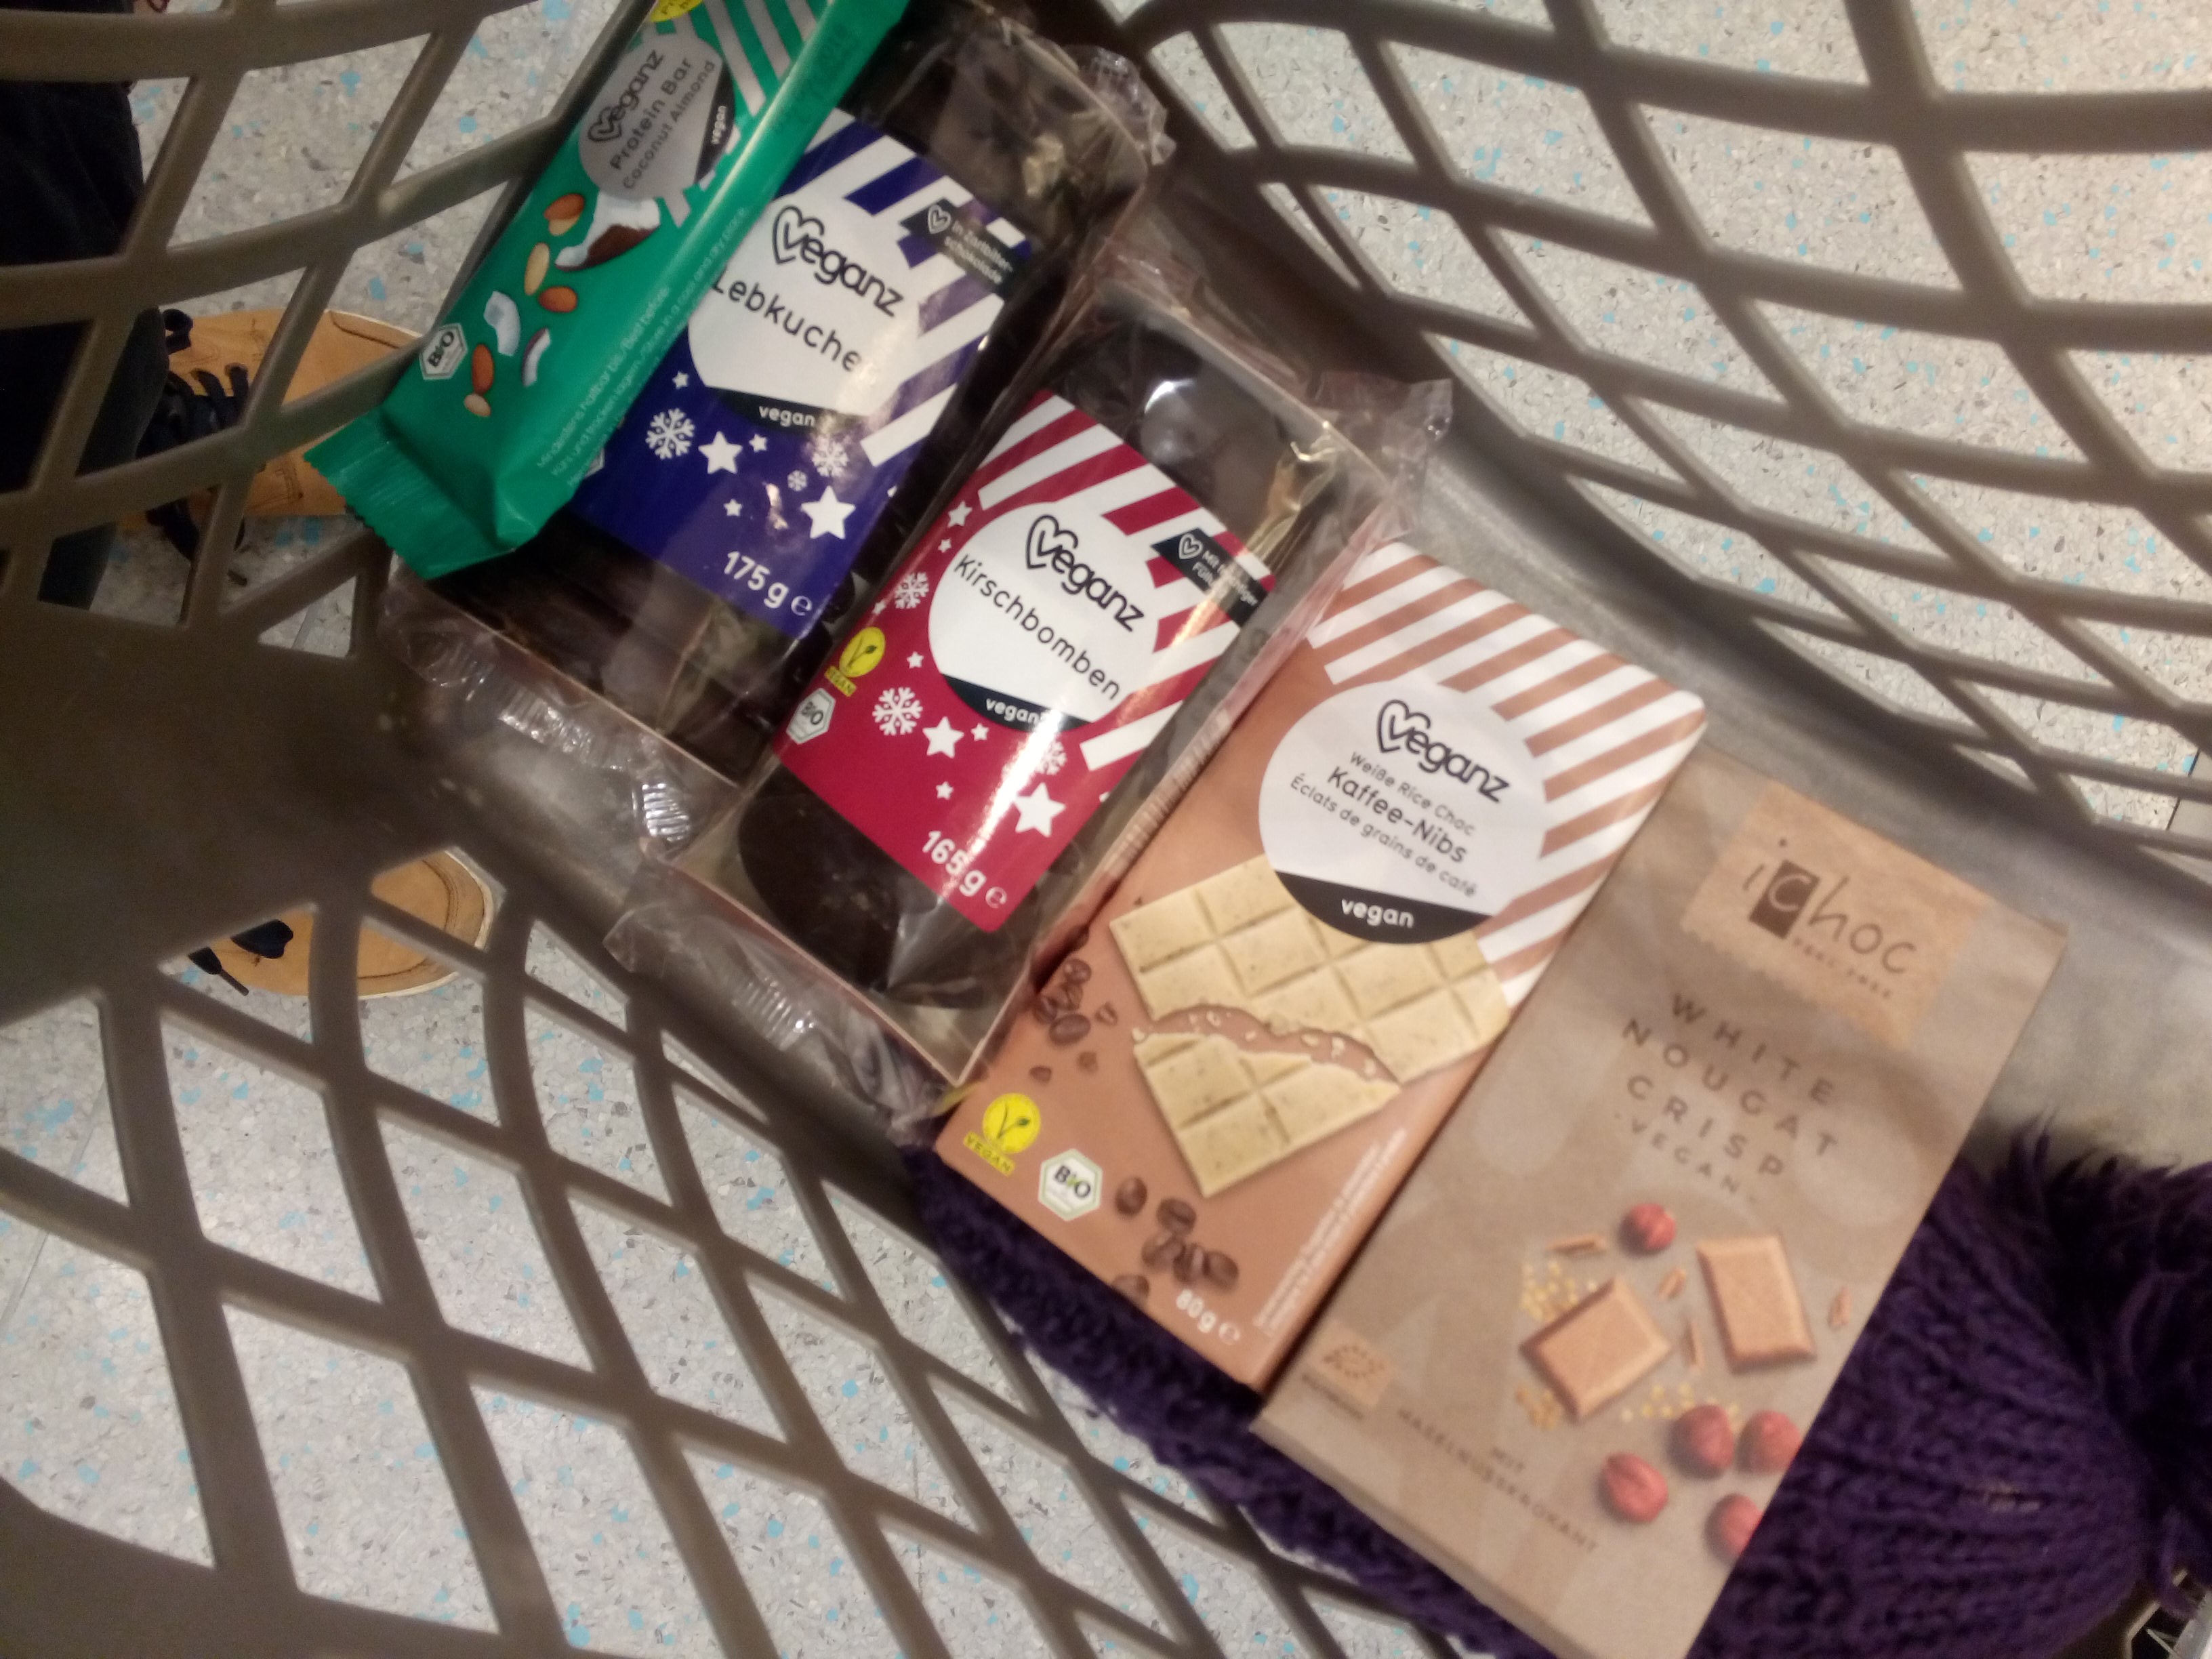 A shopping basket containing vegan cookies and chocolate